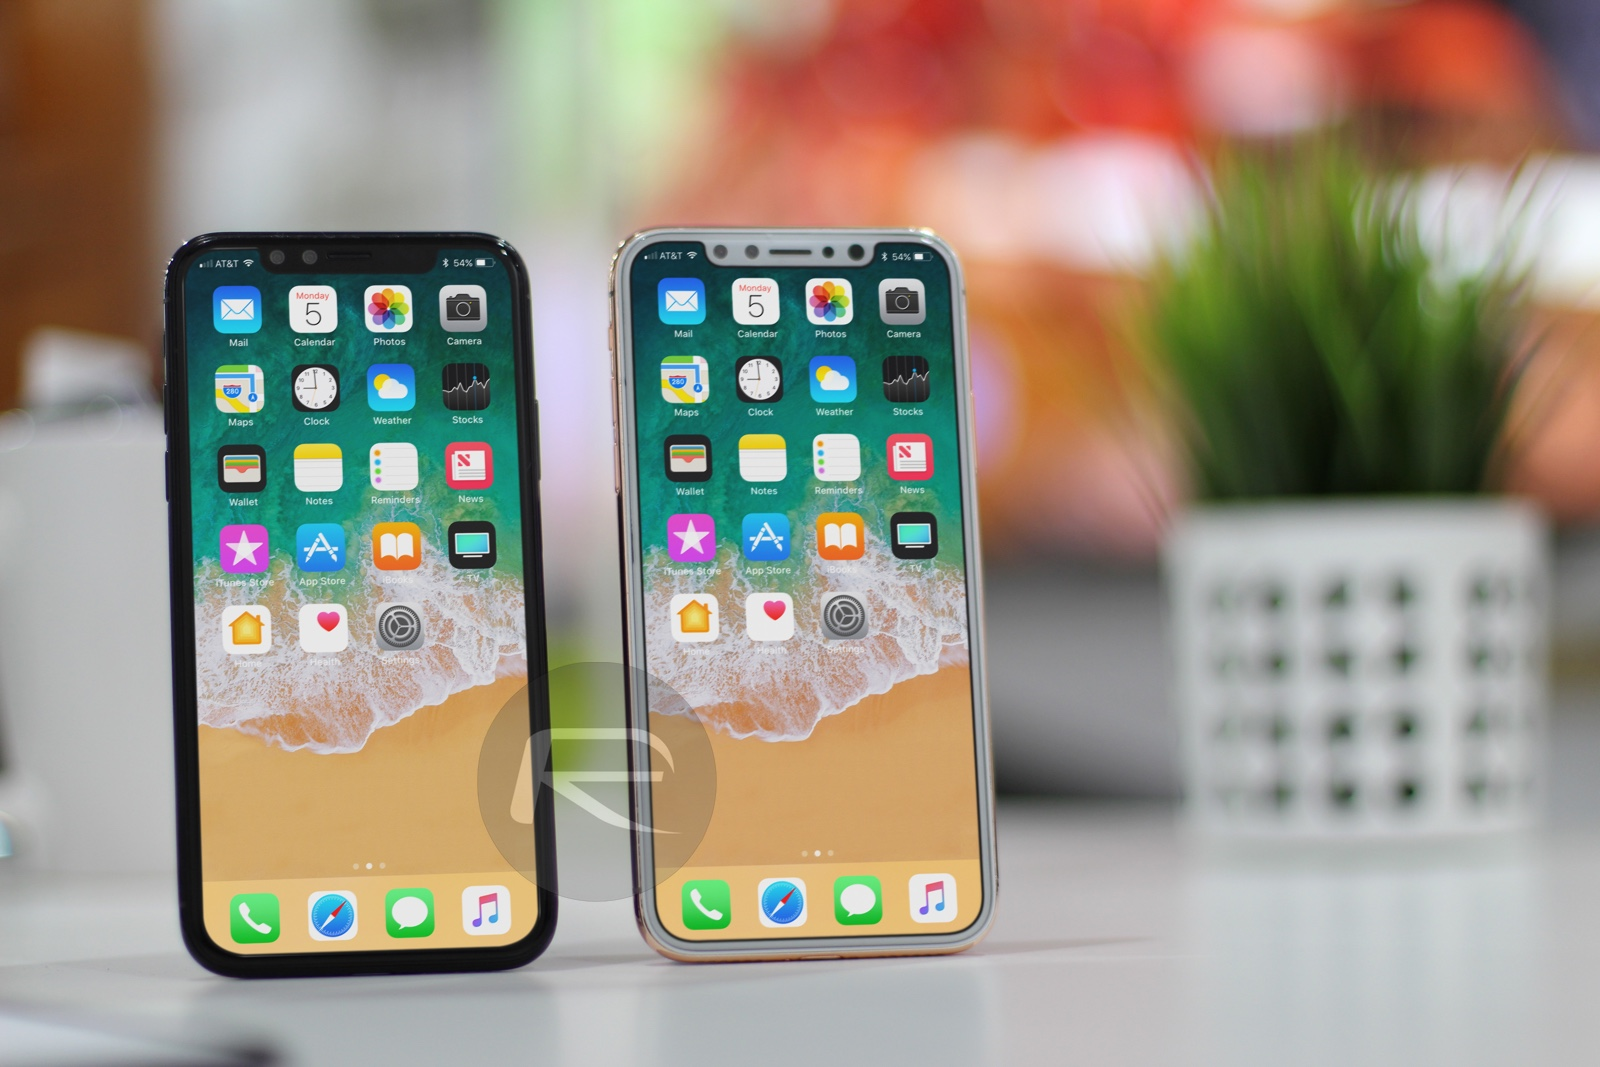 New Analyst Report Details Reason for the Reported 'iPhone 8' Price Tag